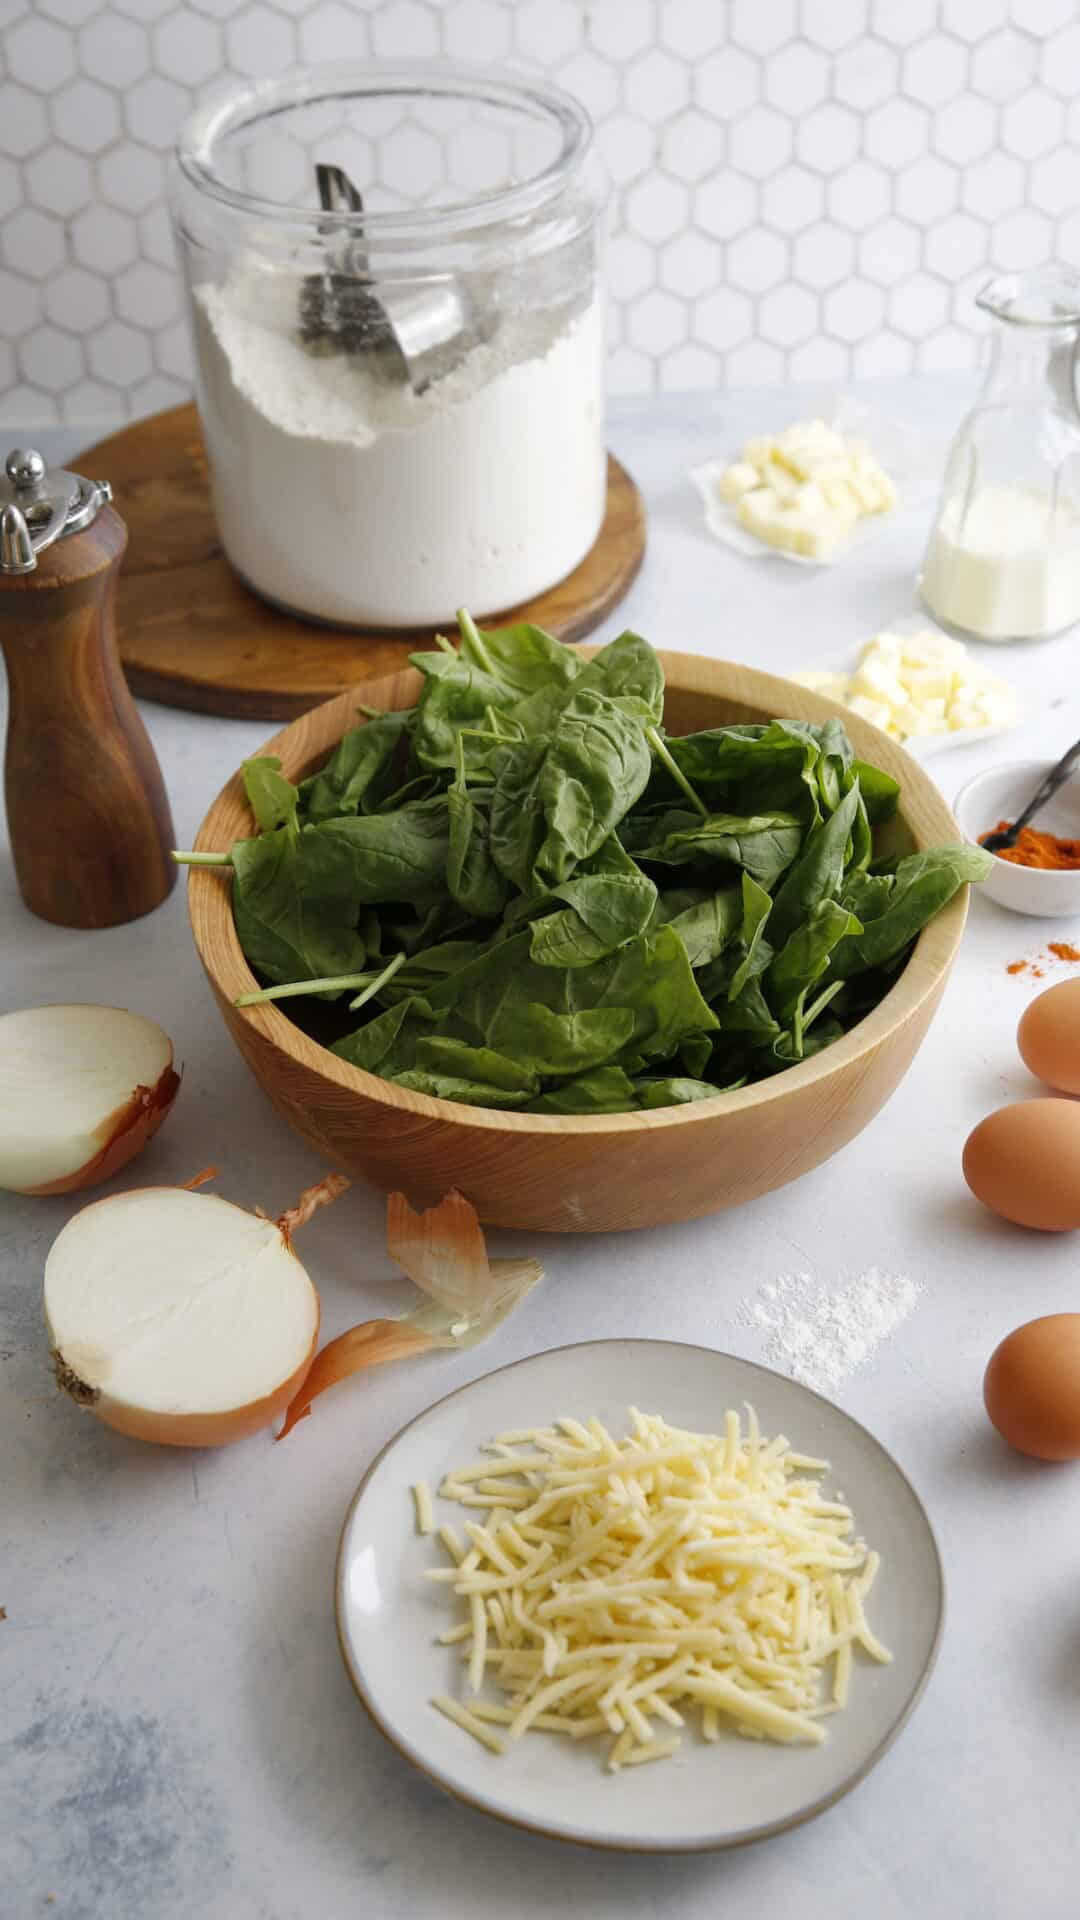 Ingredients on a table including spinach, eggs, cream, cheese and onions